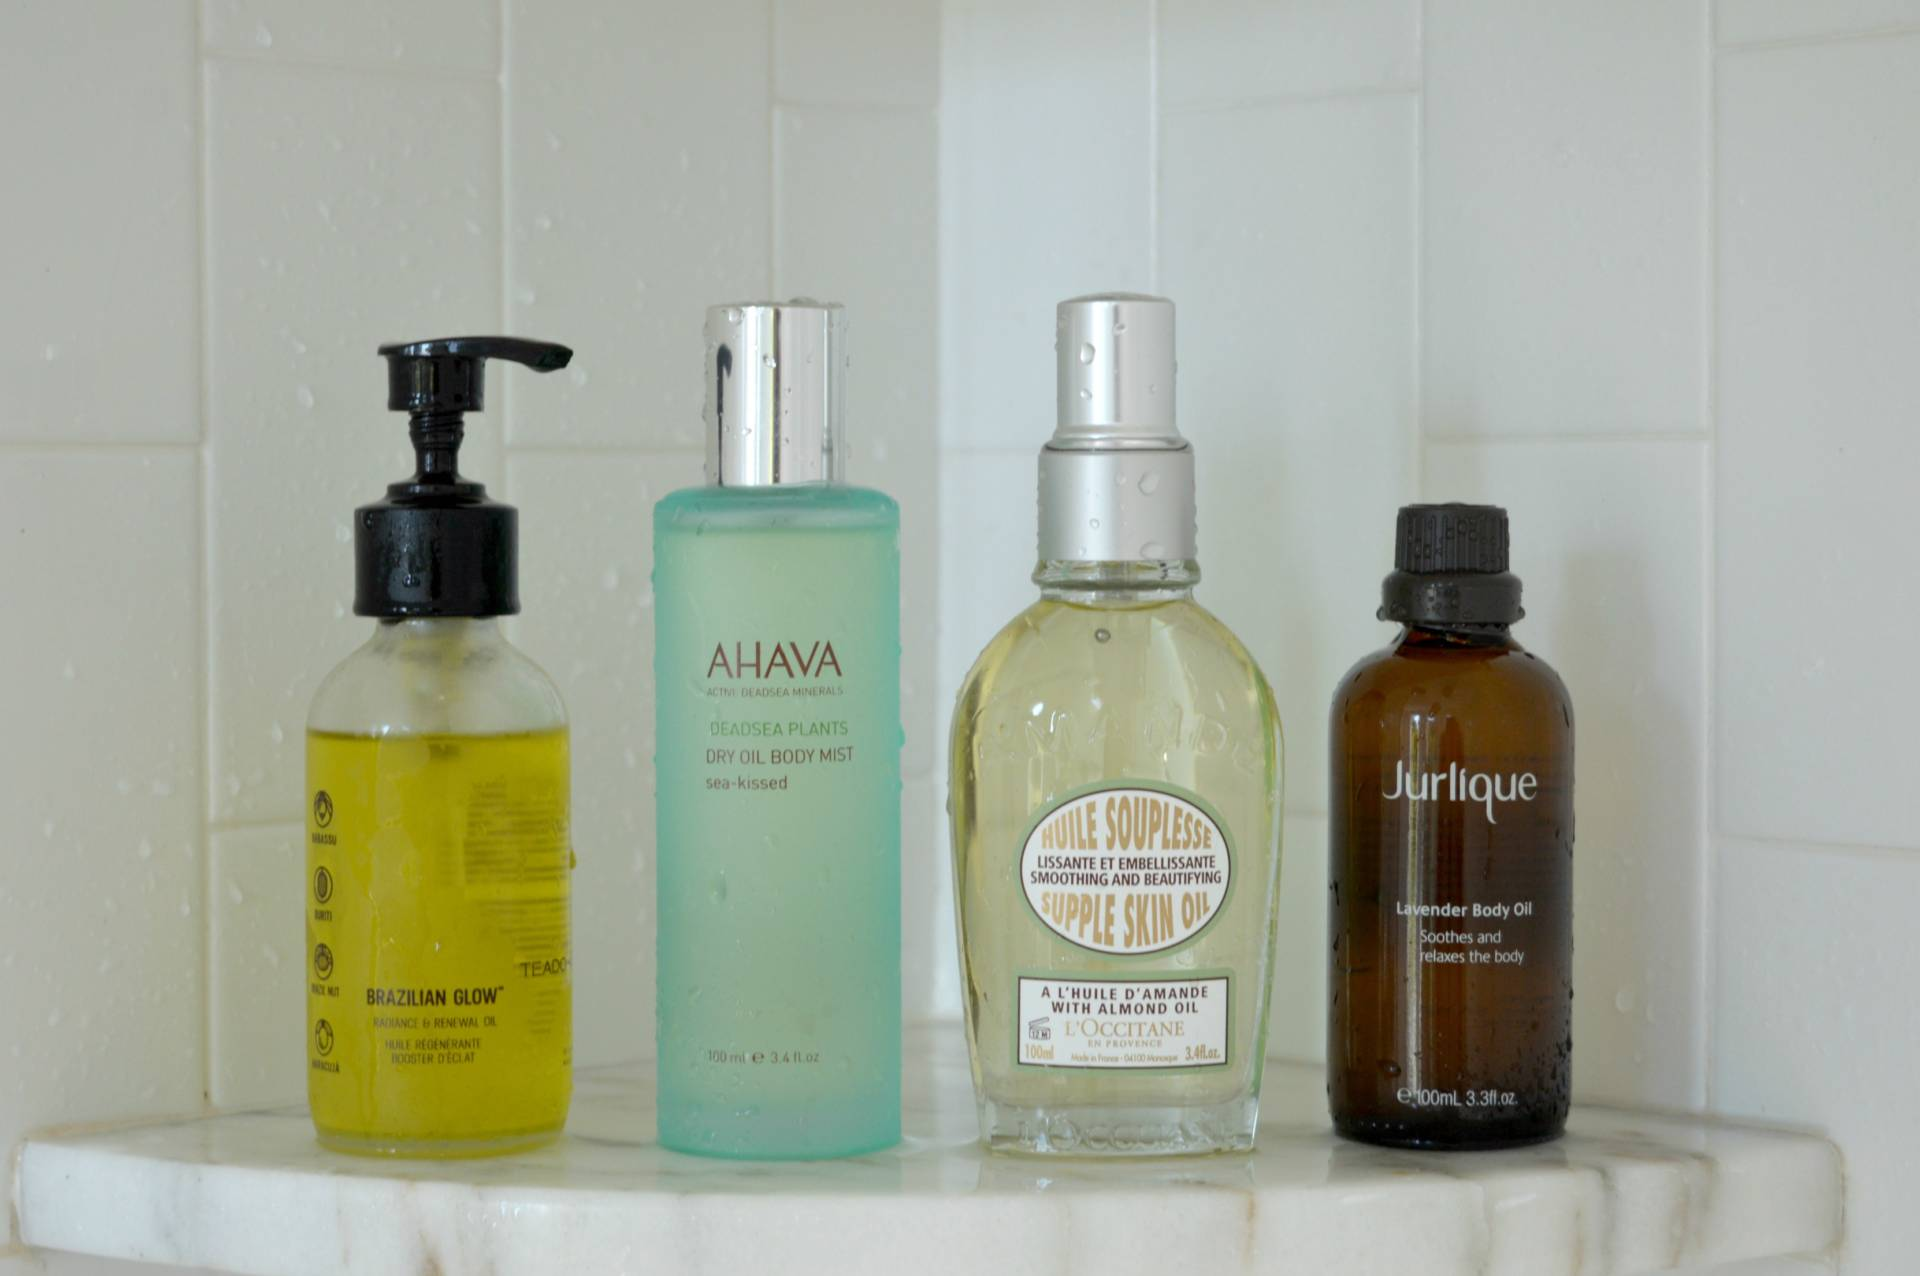 body oil edit inhautepursuit shower bath ahaha teadora loccitane jurlique